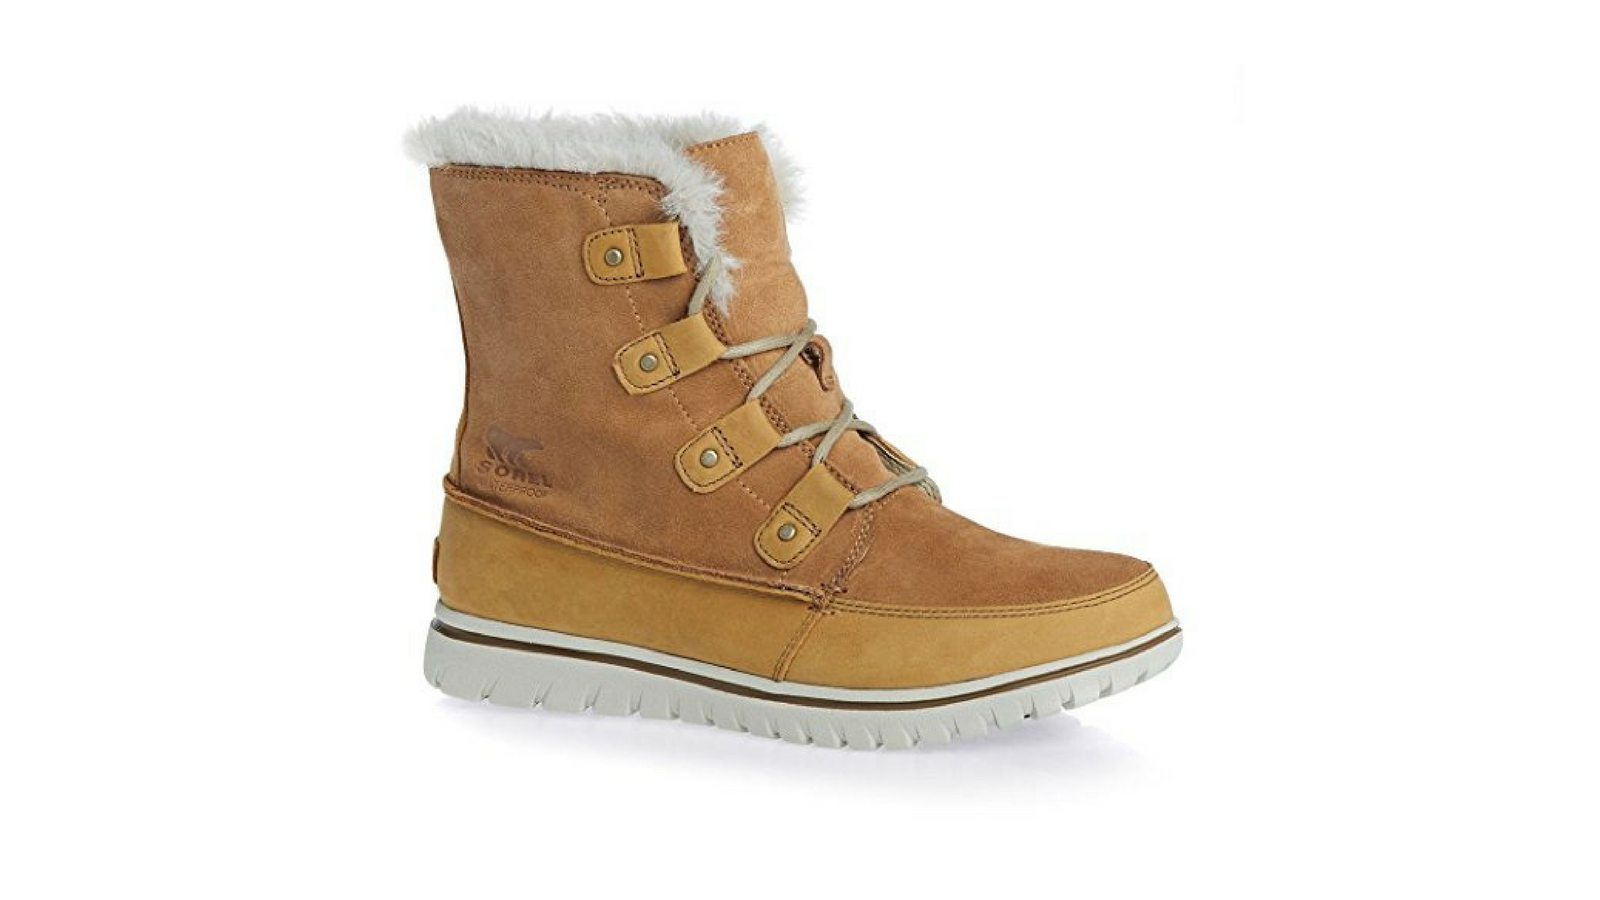 Sorel s much-loved snow boots are a safe bet for any winter adventures.  Designed in Canada f1a0d11b1b